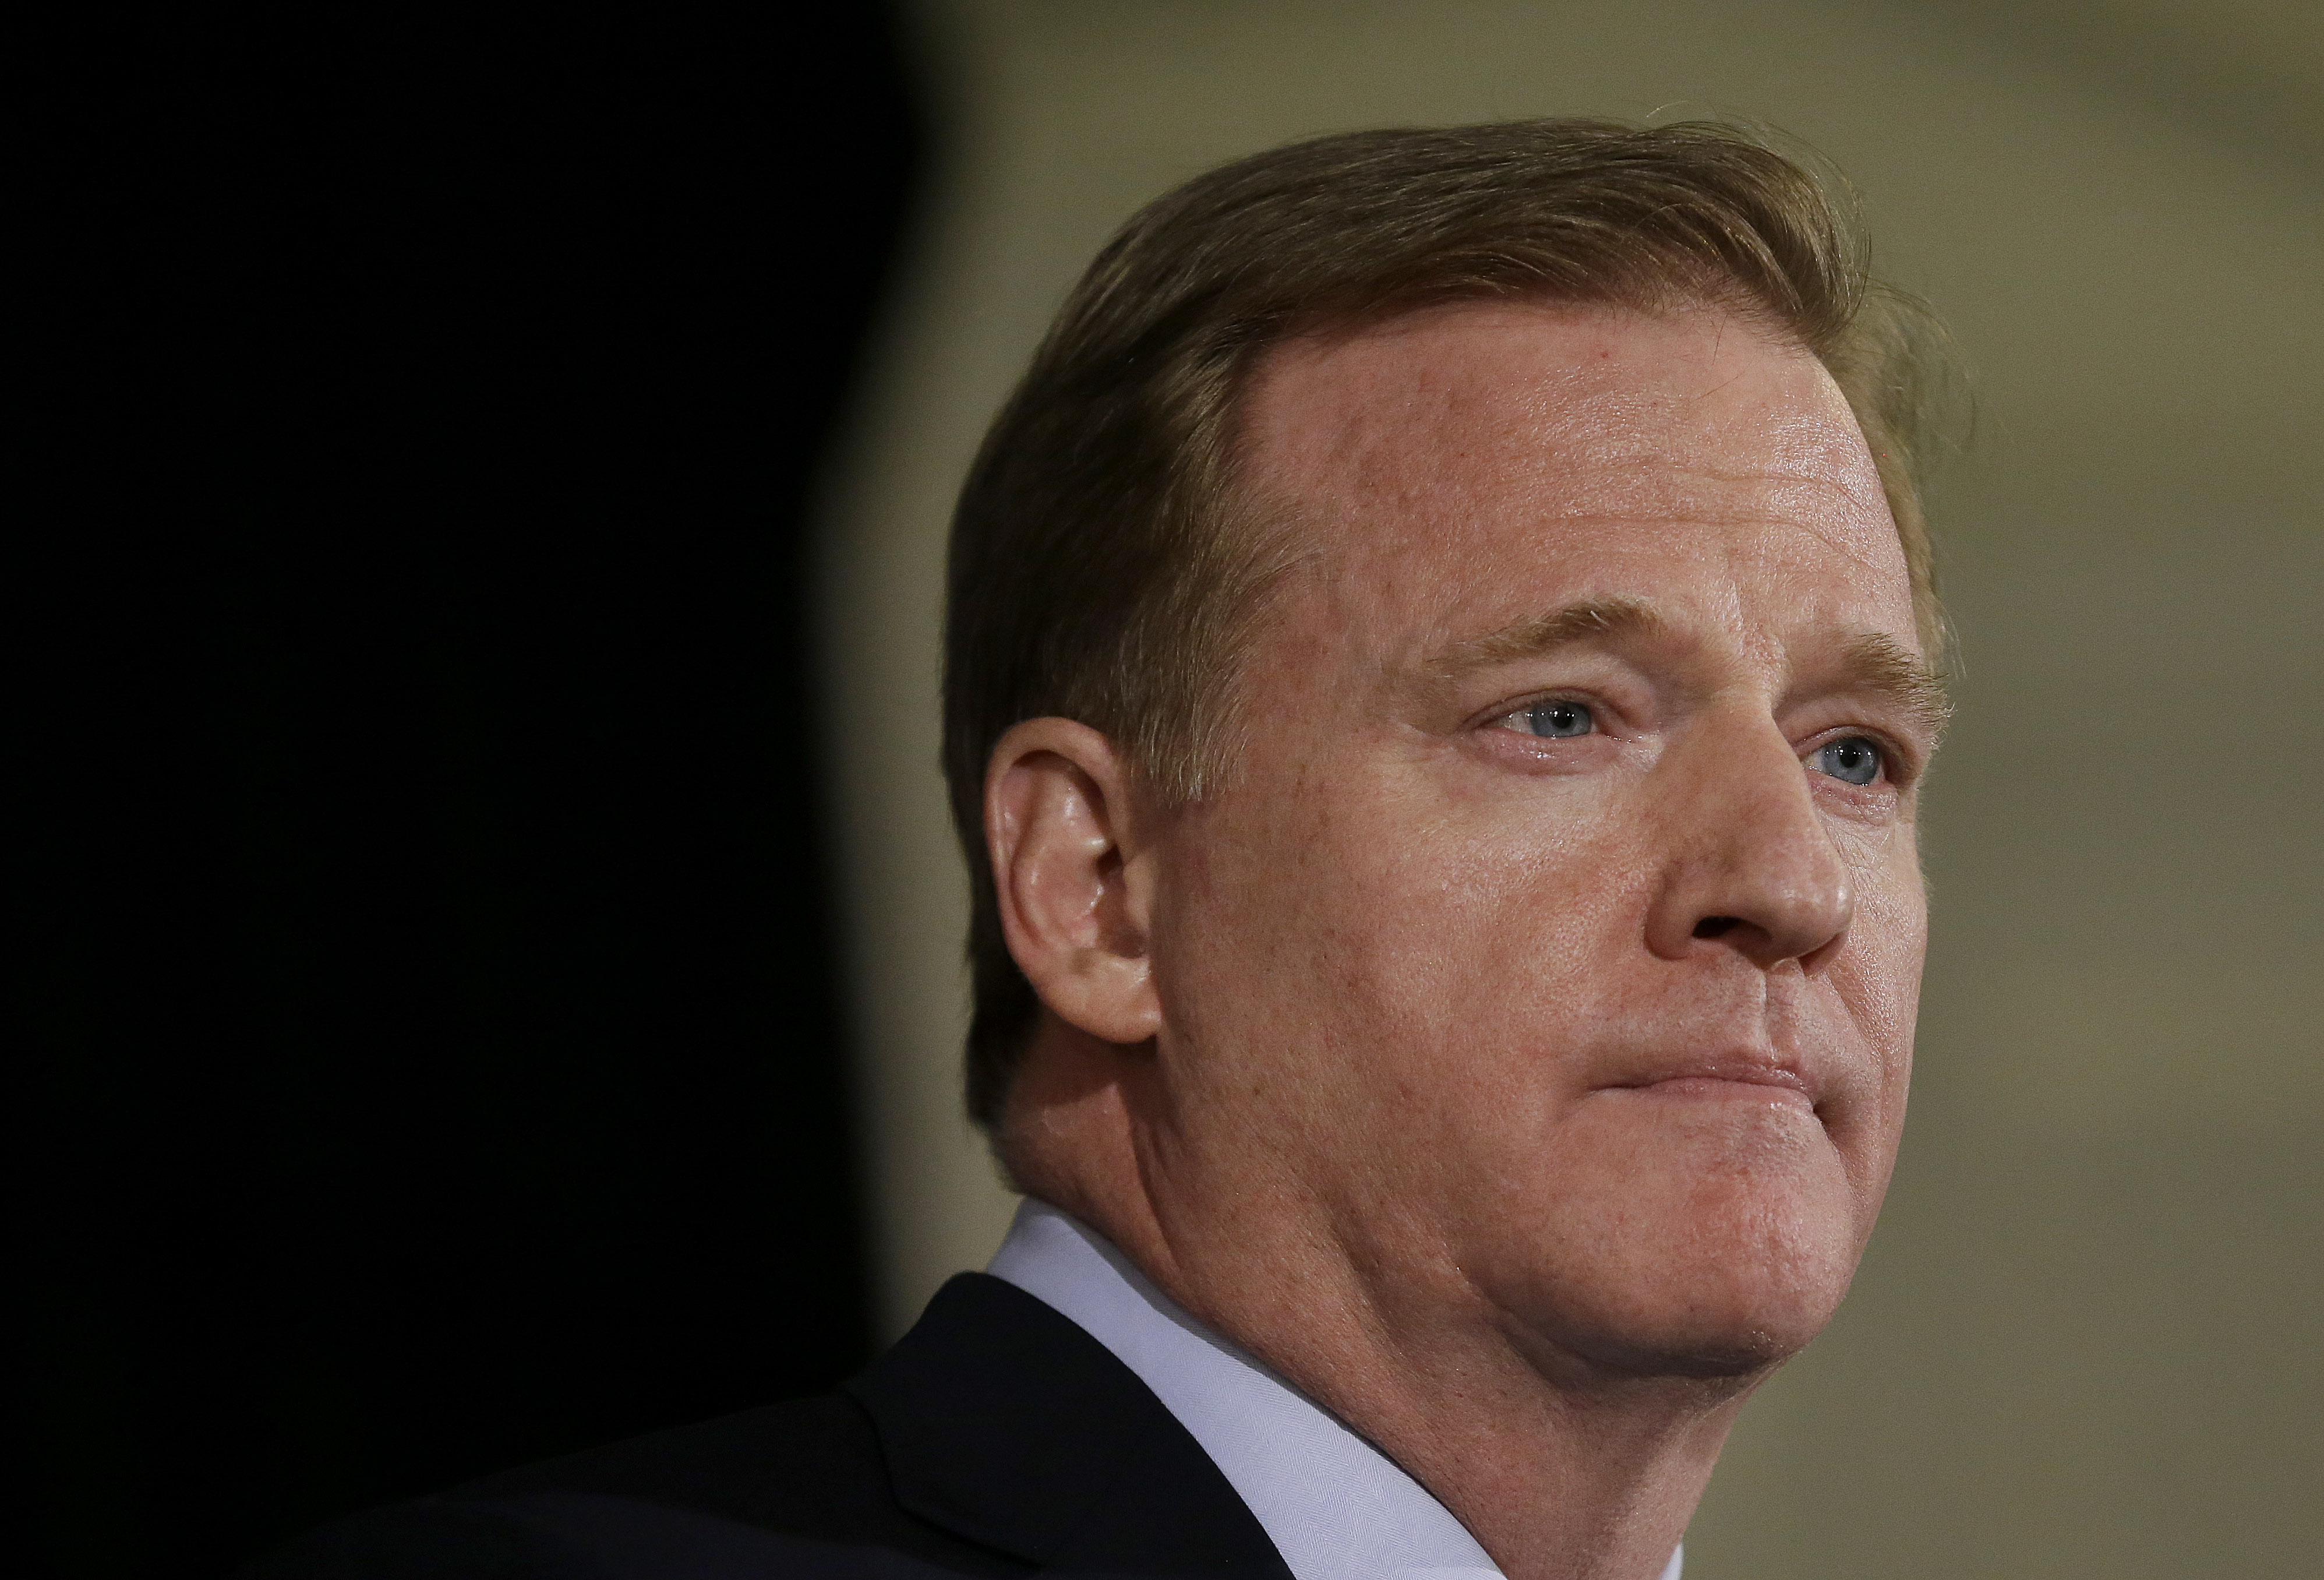 NFL Commissioner Roger Goodell speaks to reporters during the NFL's spring meetings in San Francisco, Wednesday, May 20, 2015. (AP Photo/Jeff Chiu)